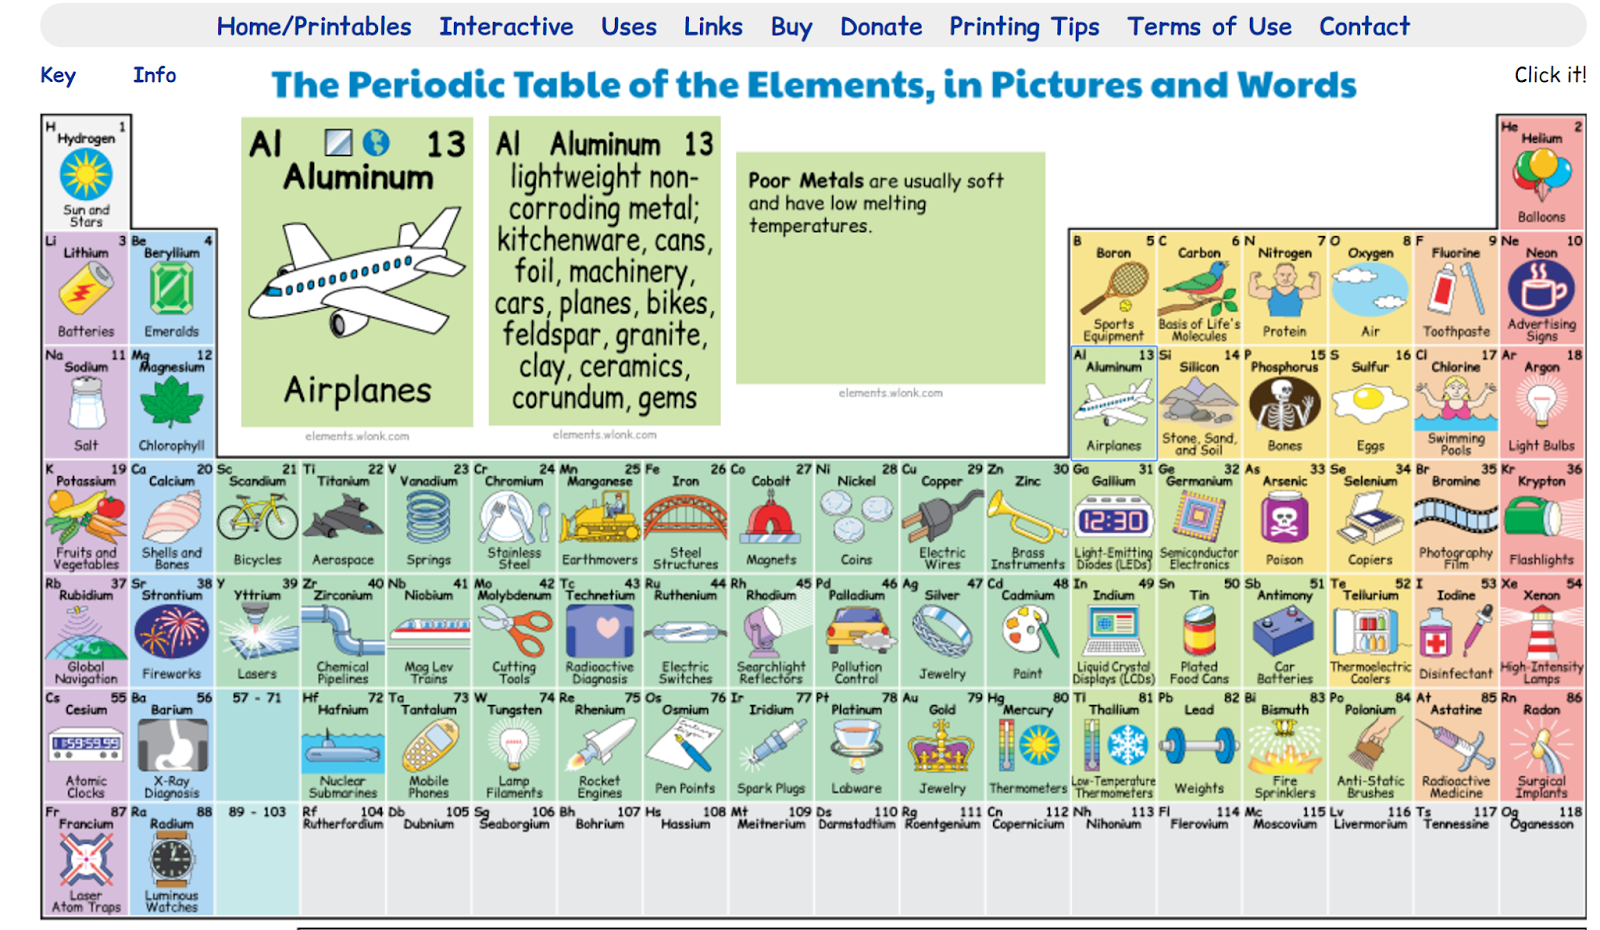 Periodic table with legend gallery periodic table images periodic table elements websites brokeasshome free technology for teachers the periodic table in pictures and words gamestrikefo Image collections